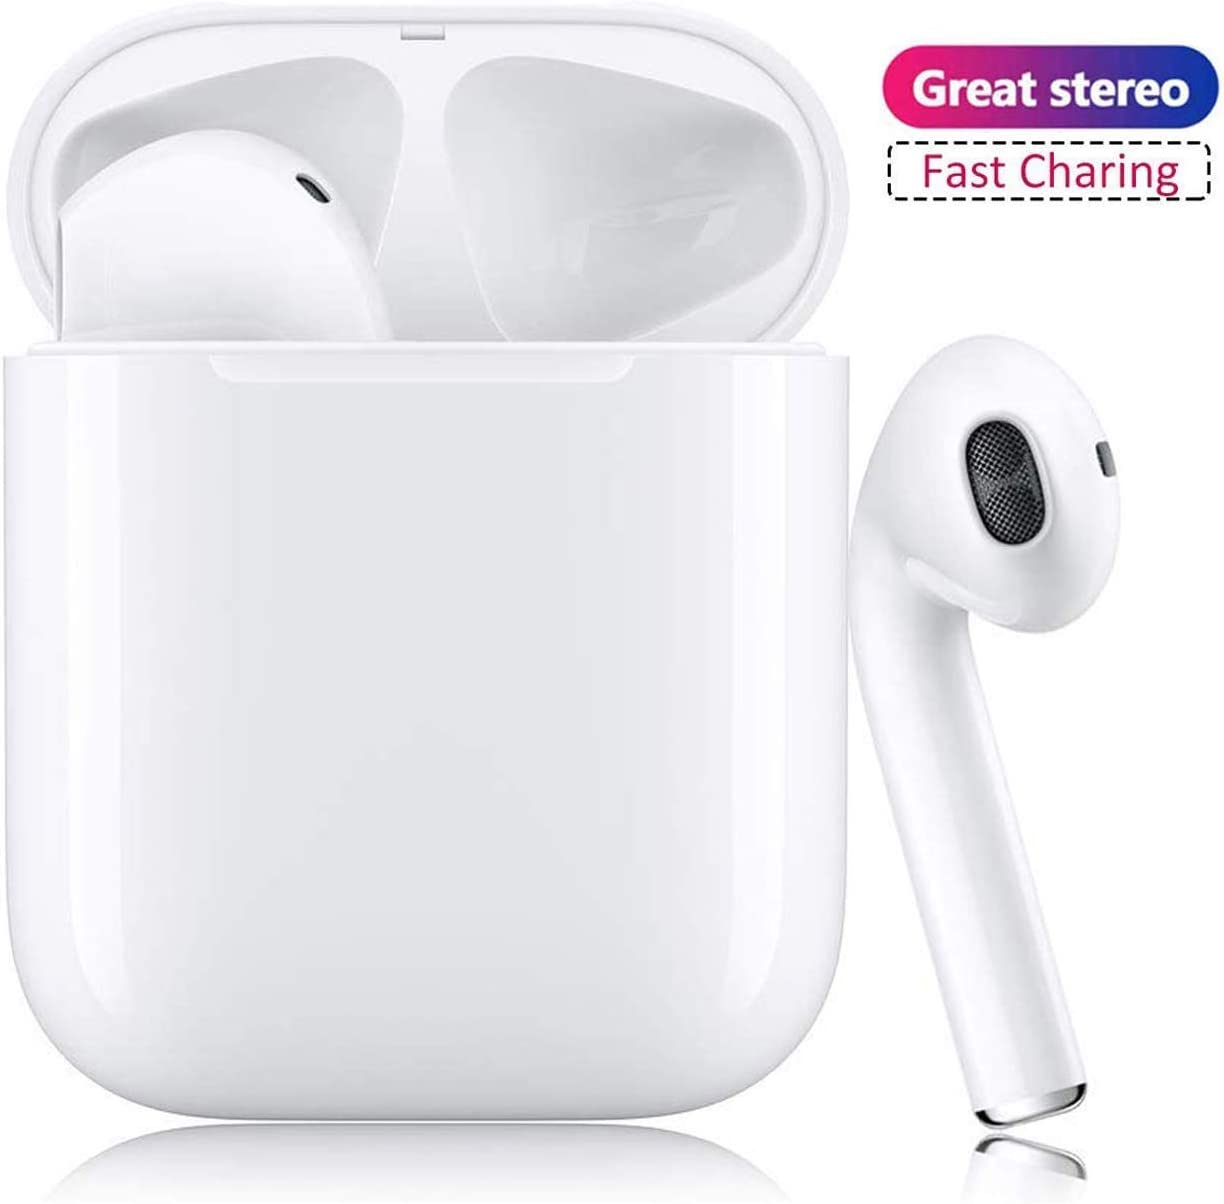 Bluetooth Wireless Earbuds Noise Canceling Sports Headphones with Charging Case IPX5 Waterproof Stereo Earphones in-Ear Built-in HD Mic Headsets for iPhone Android Apple Airpod White